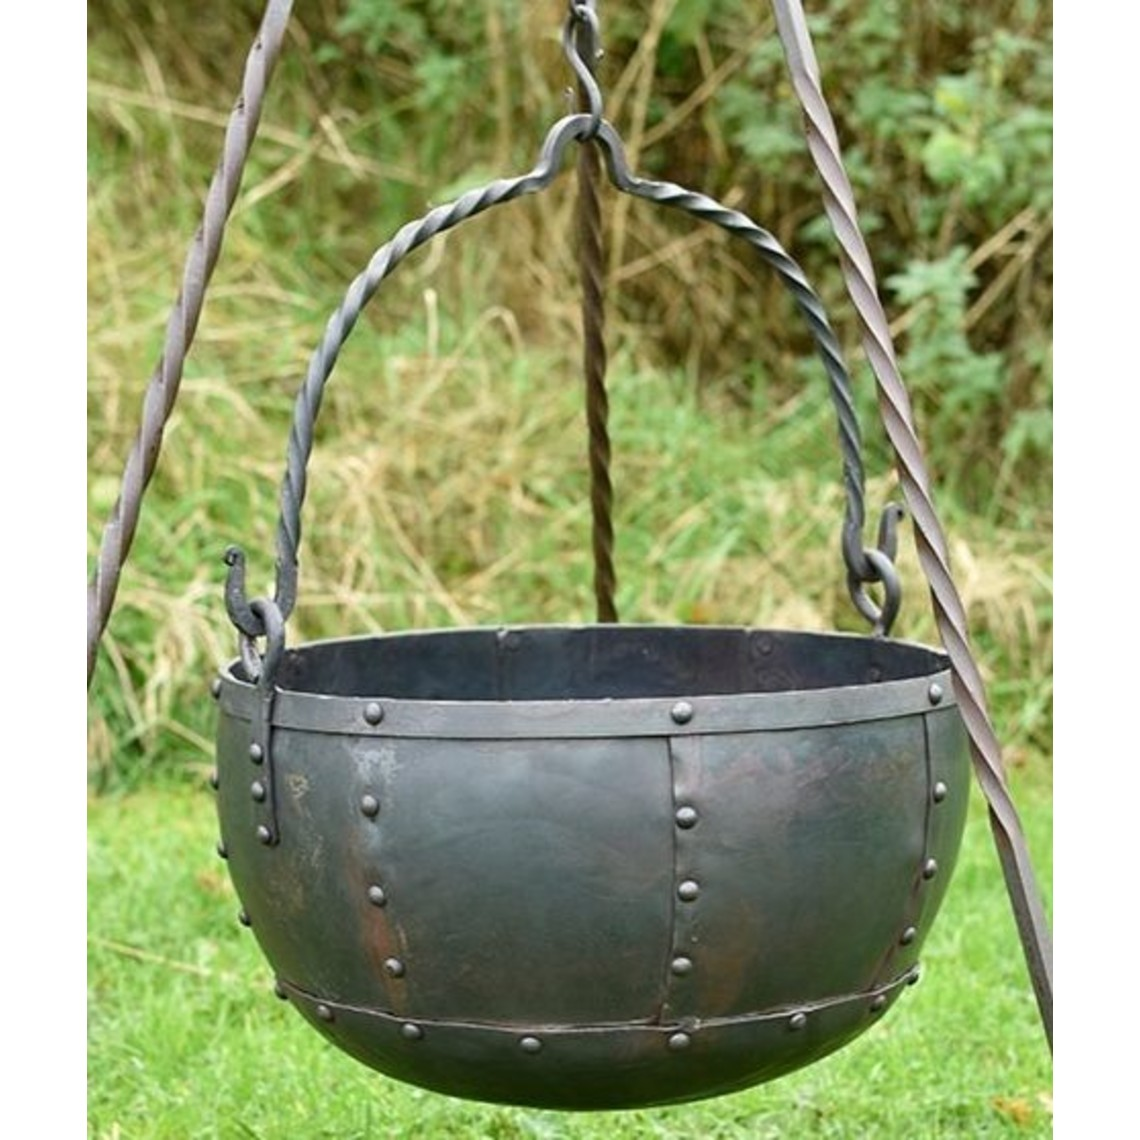 Early medieval cauldron large